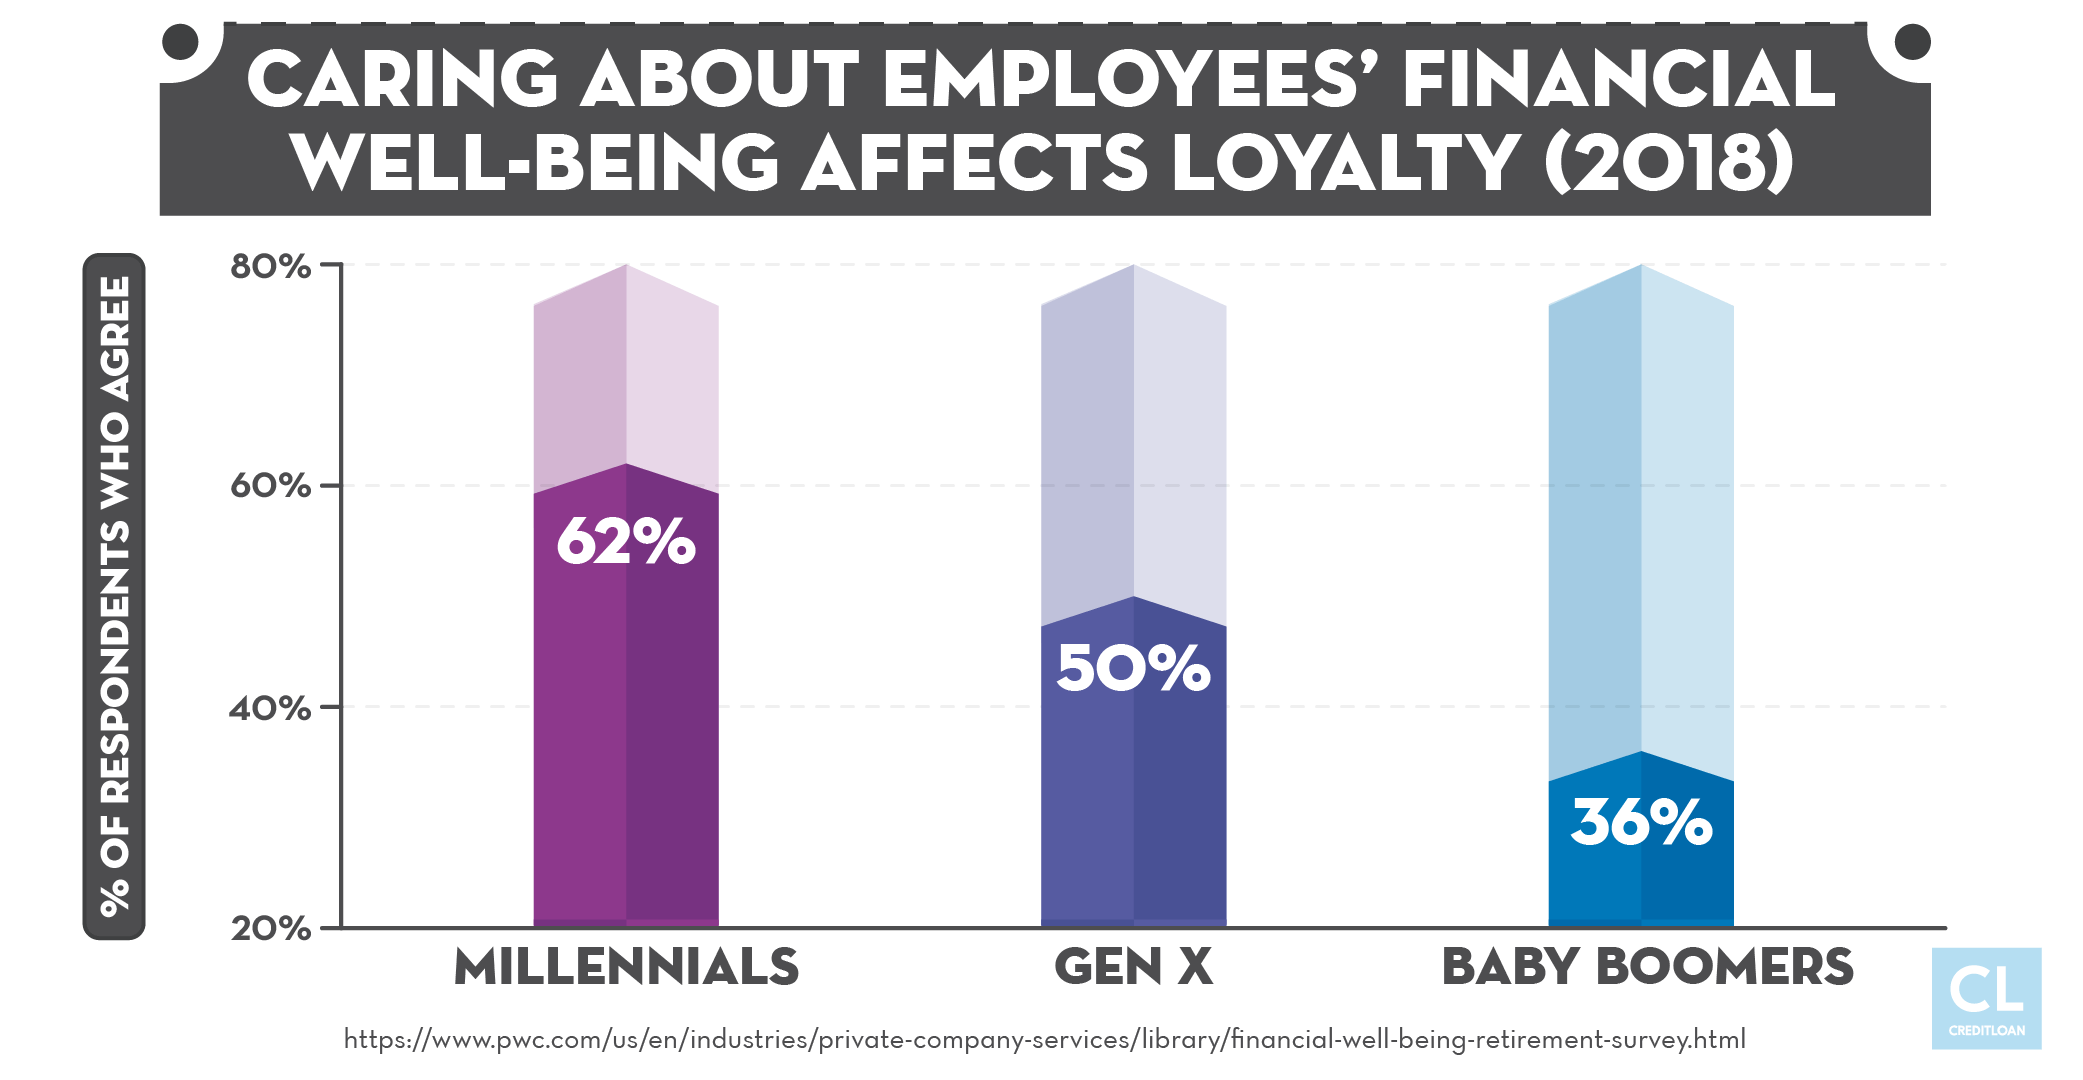 Caring About Employees' Financial Well-Being Affects Loyalty